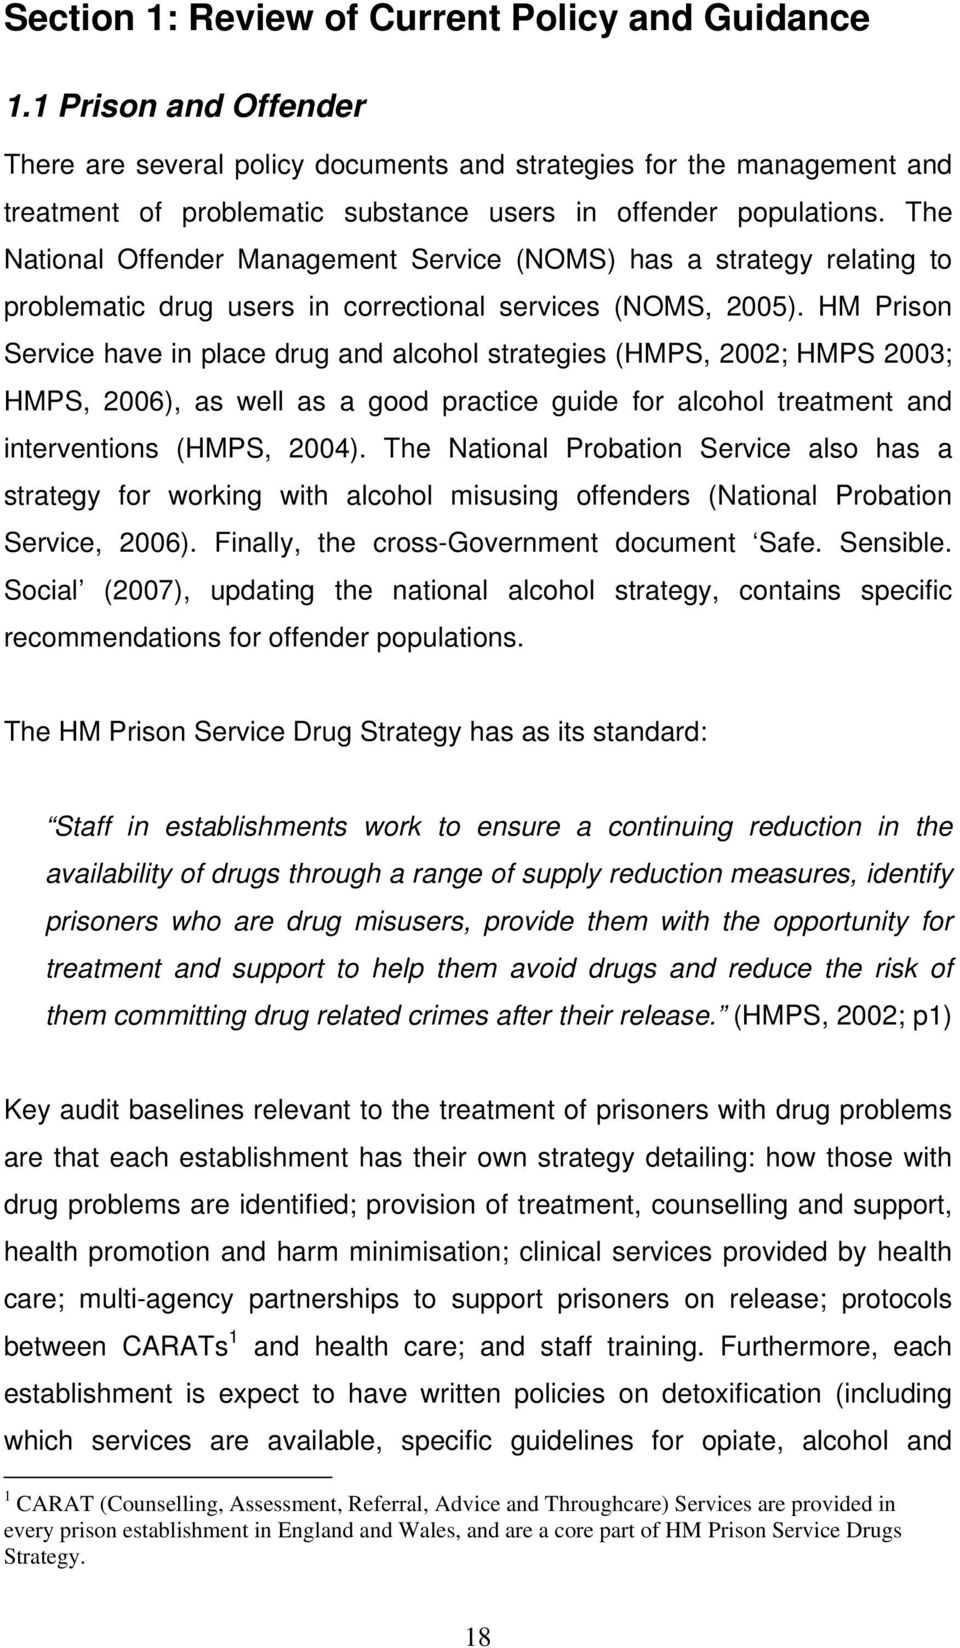 The National Offender Management Service (NOMS) has a strategy relating to problematic drug users in correctional services (NOMS, 2005).